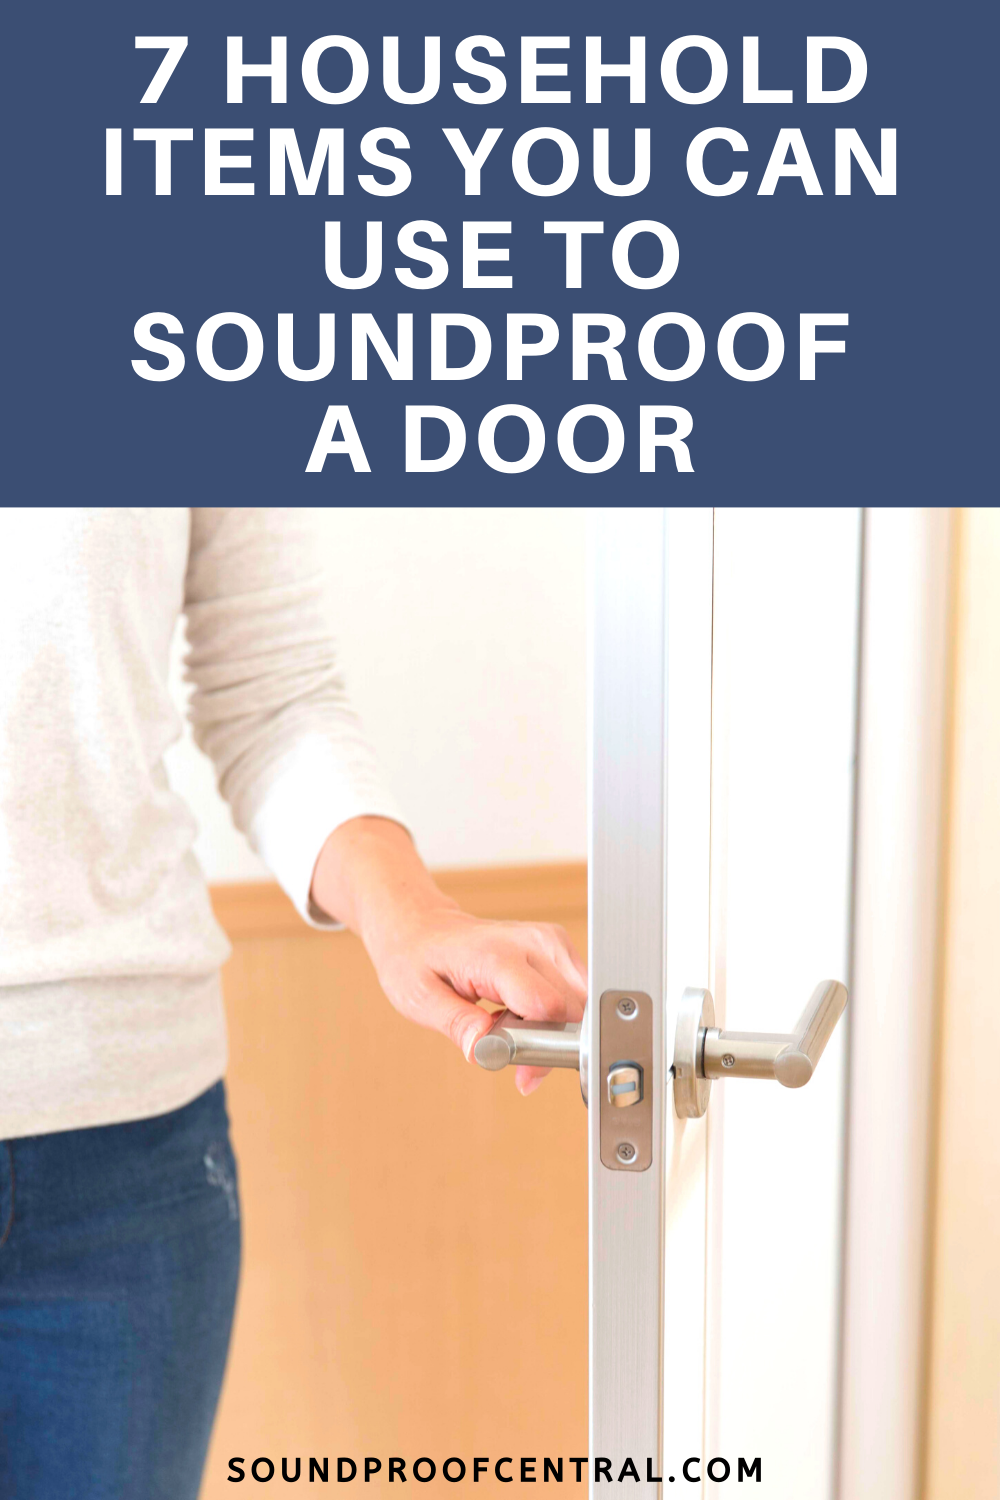 7 Household Items You Can Use to Soundproof a Door ...